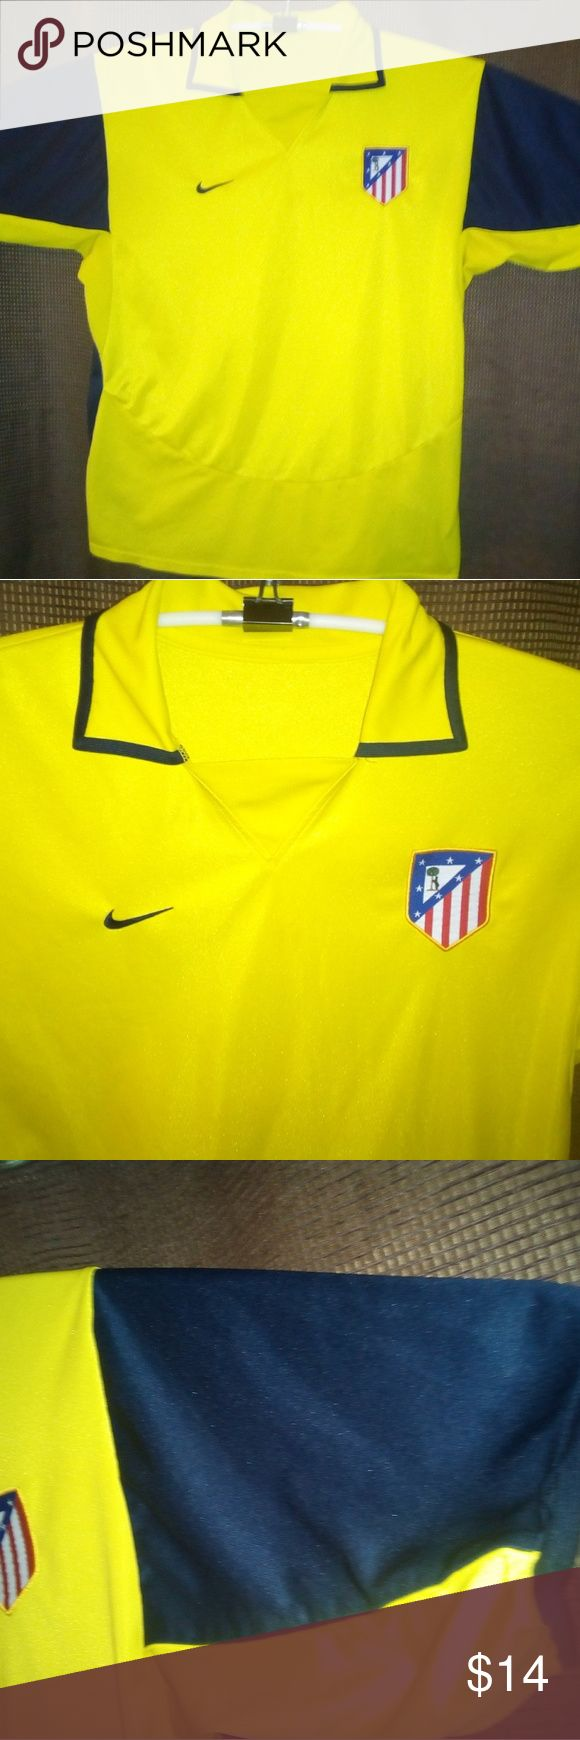 camiseta atletico de madrid marca